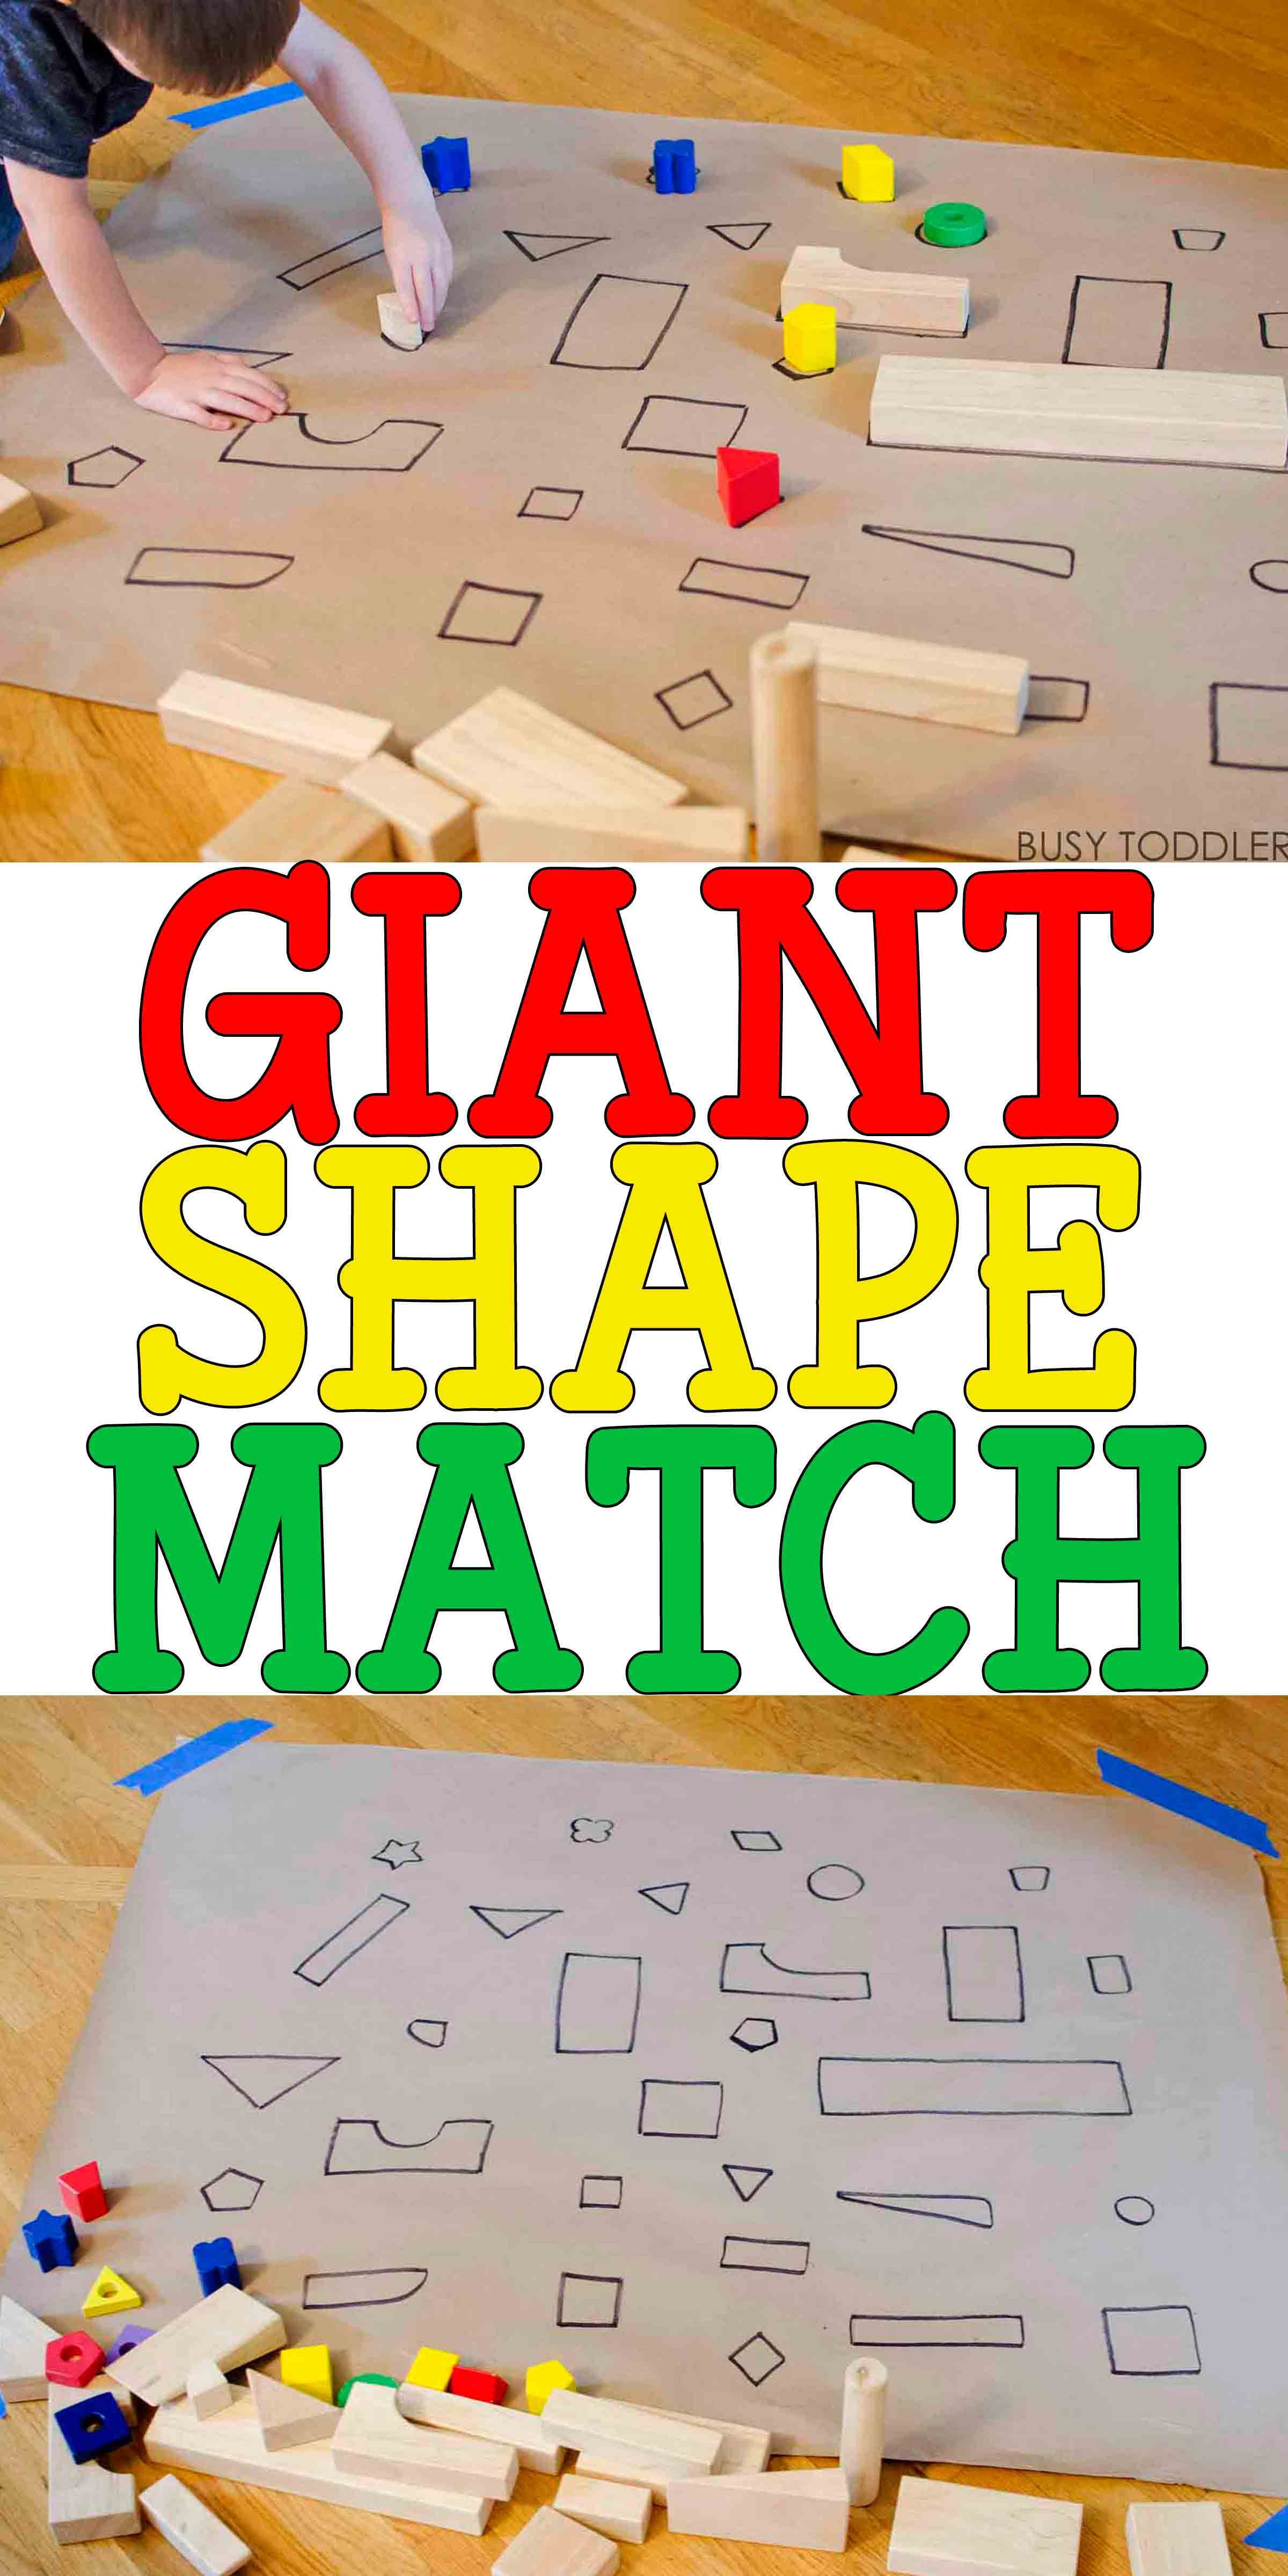 Game with shapes of different colors crossword - Giant Shape Match Check Out This Awesome Indoor Math Activity For Toddlers And Preschoolers